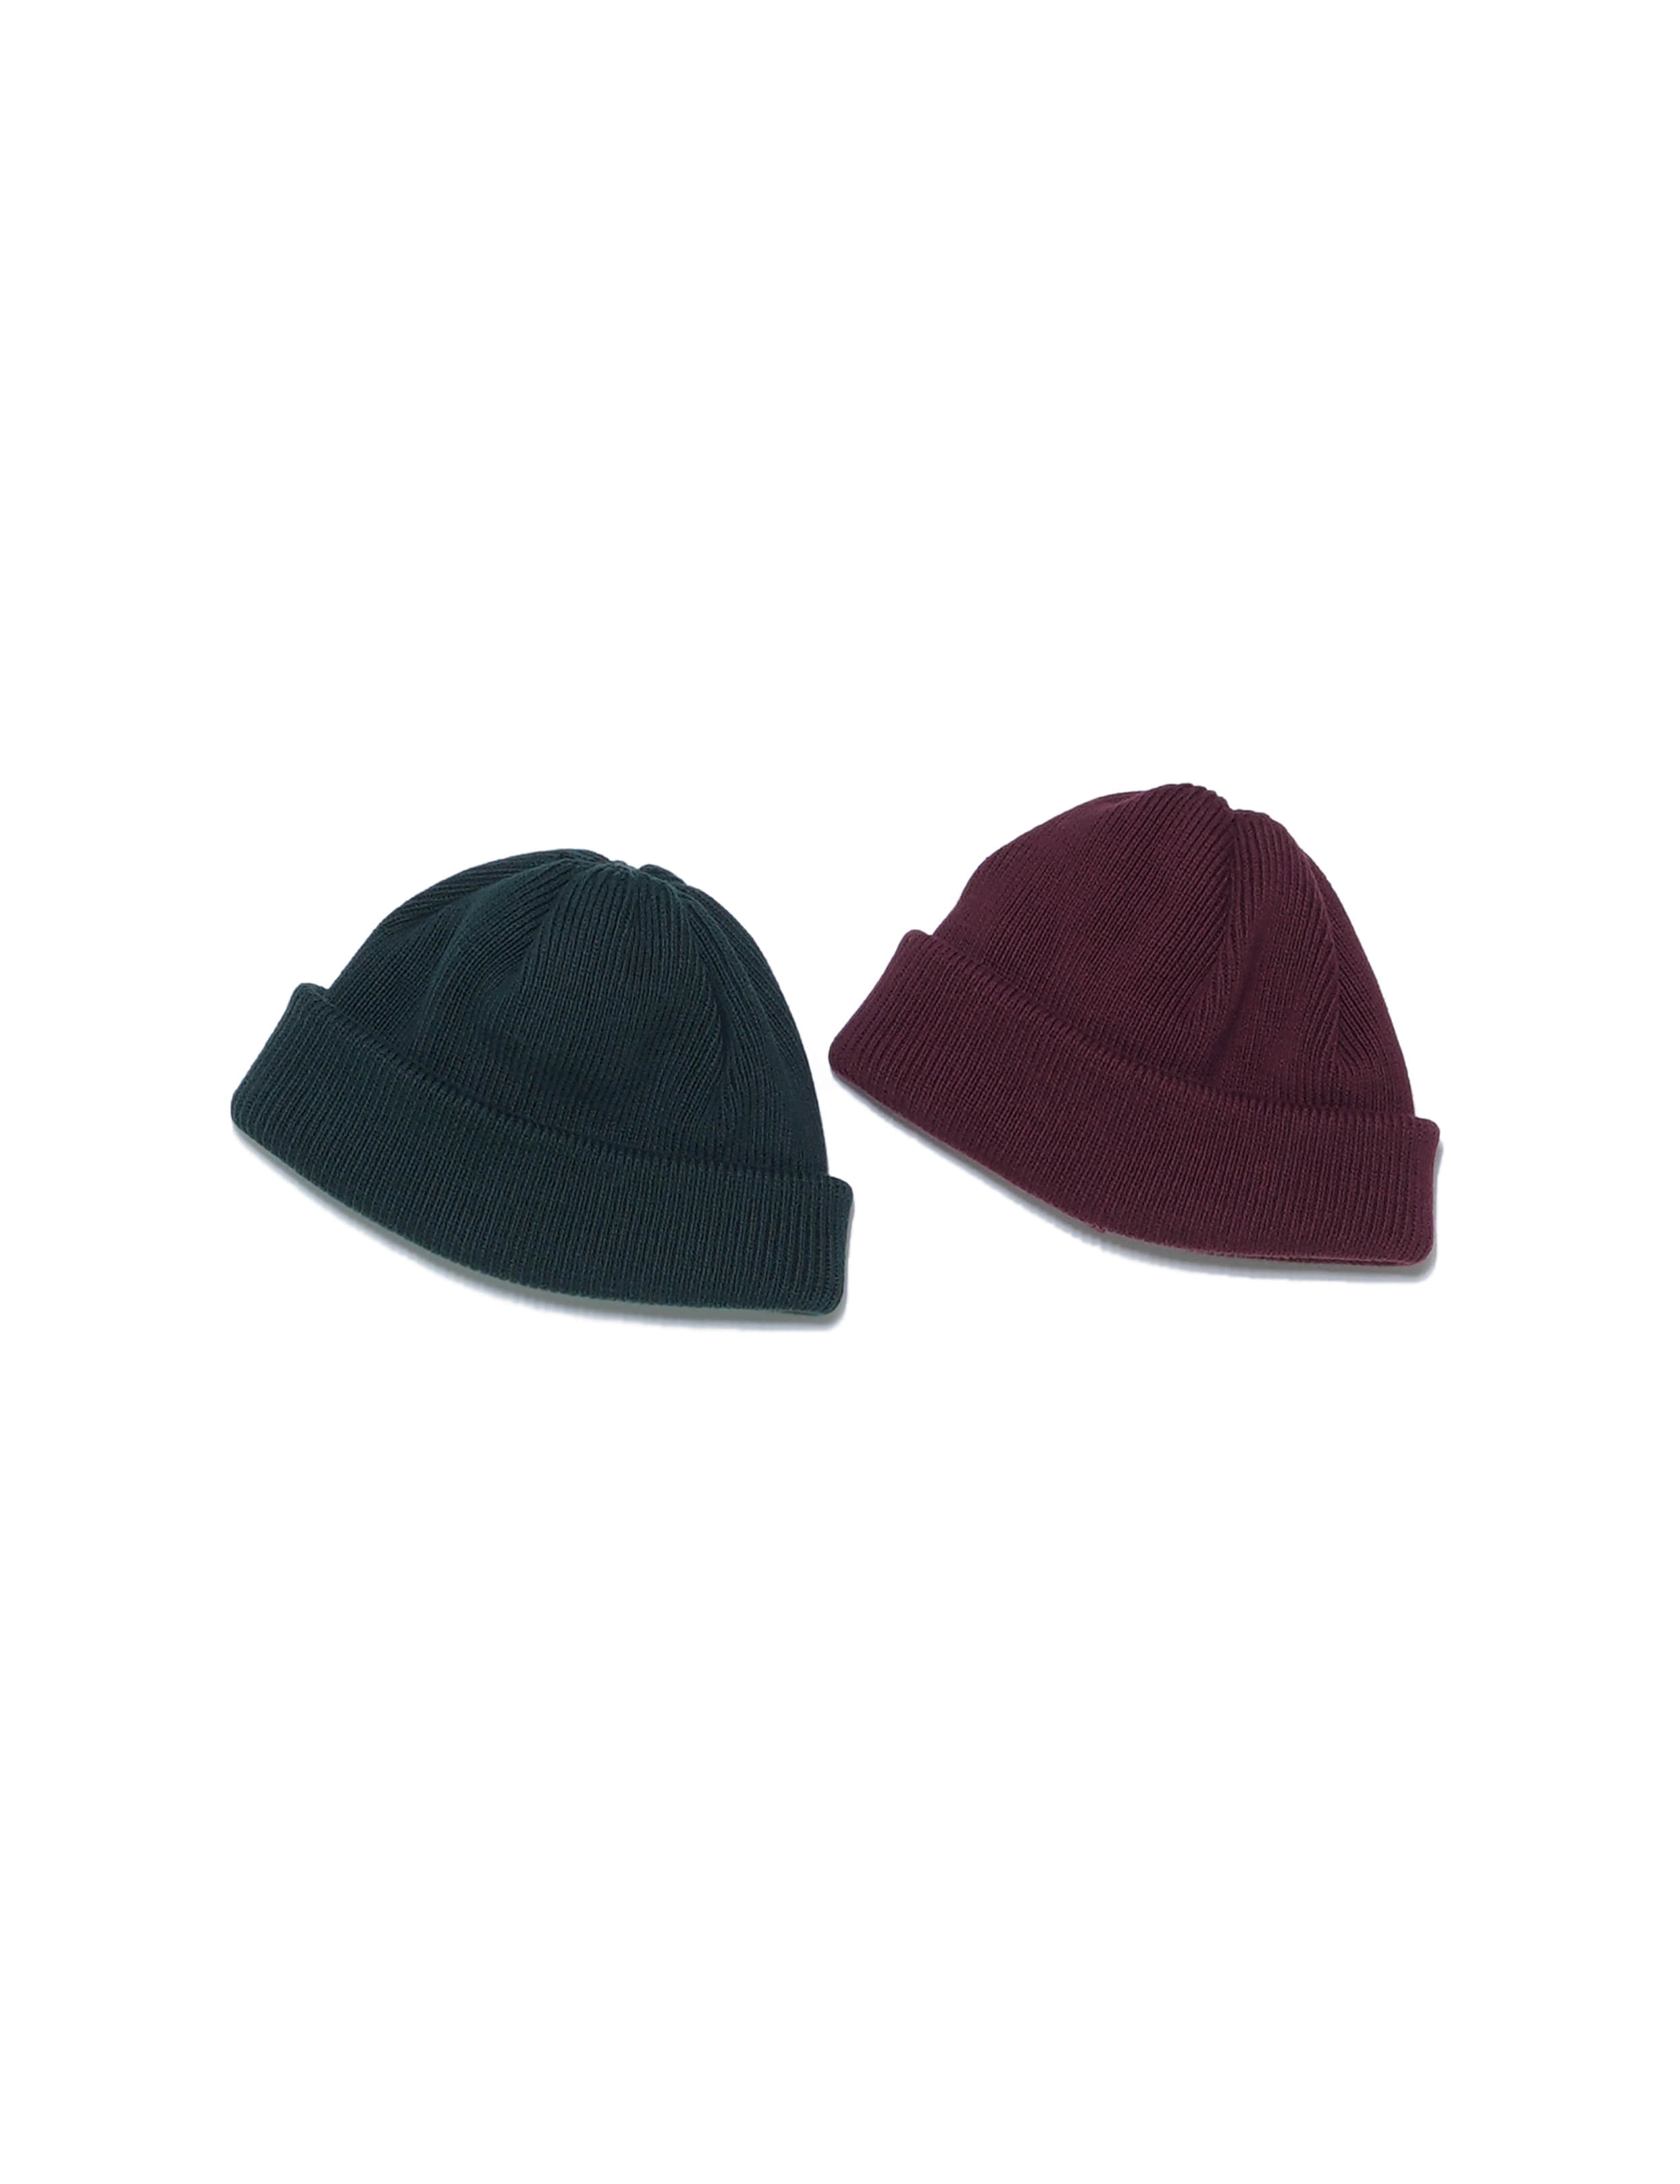 KNIT CAP 2 (2 COLORS)